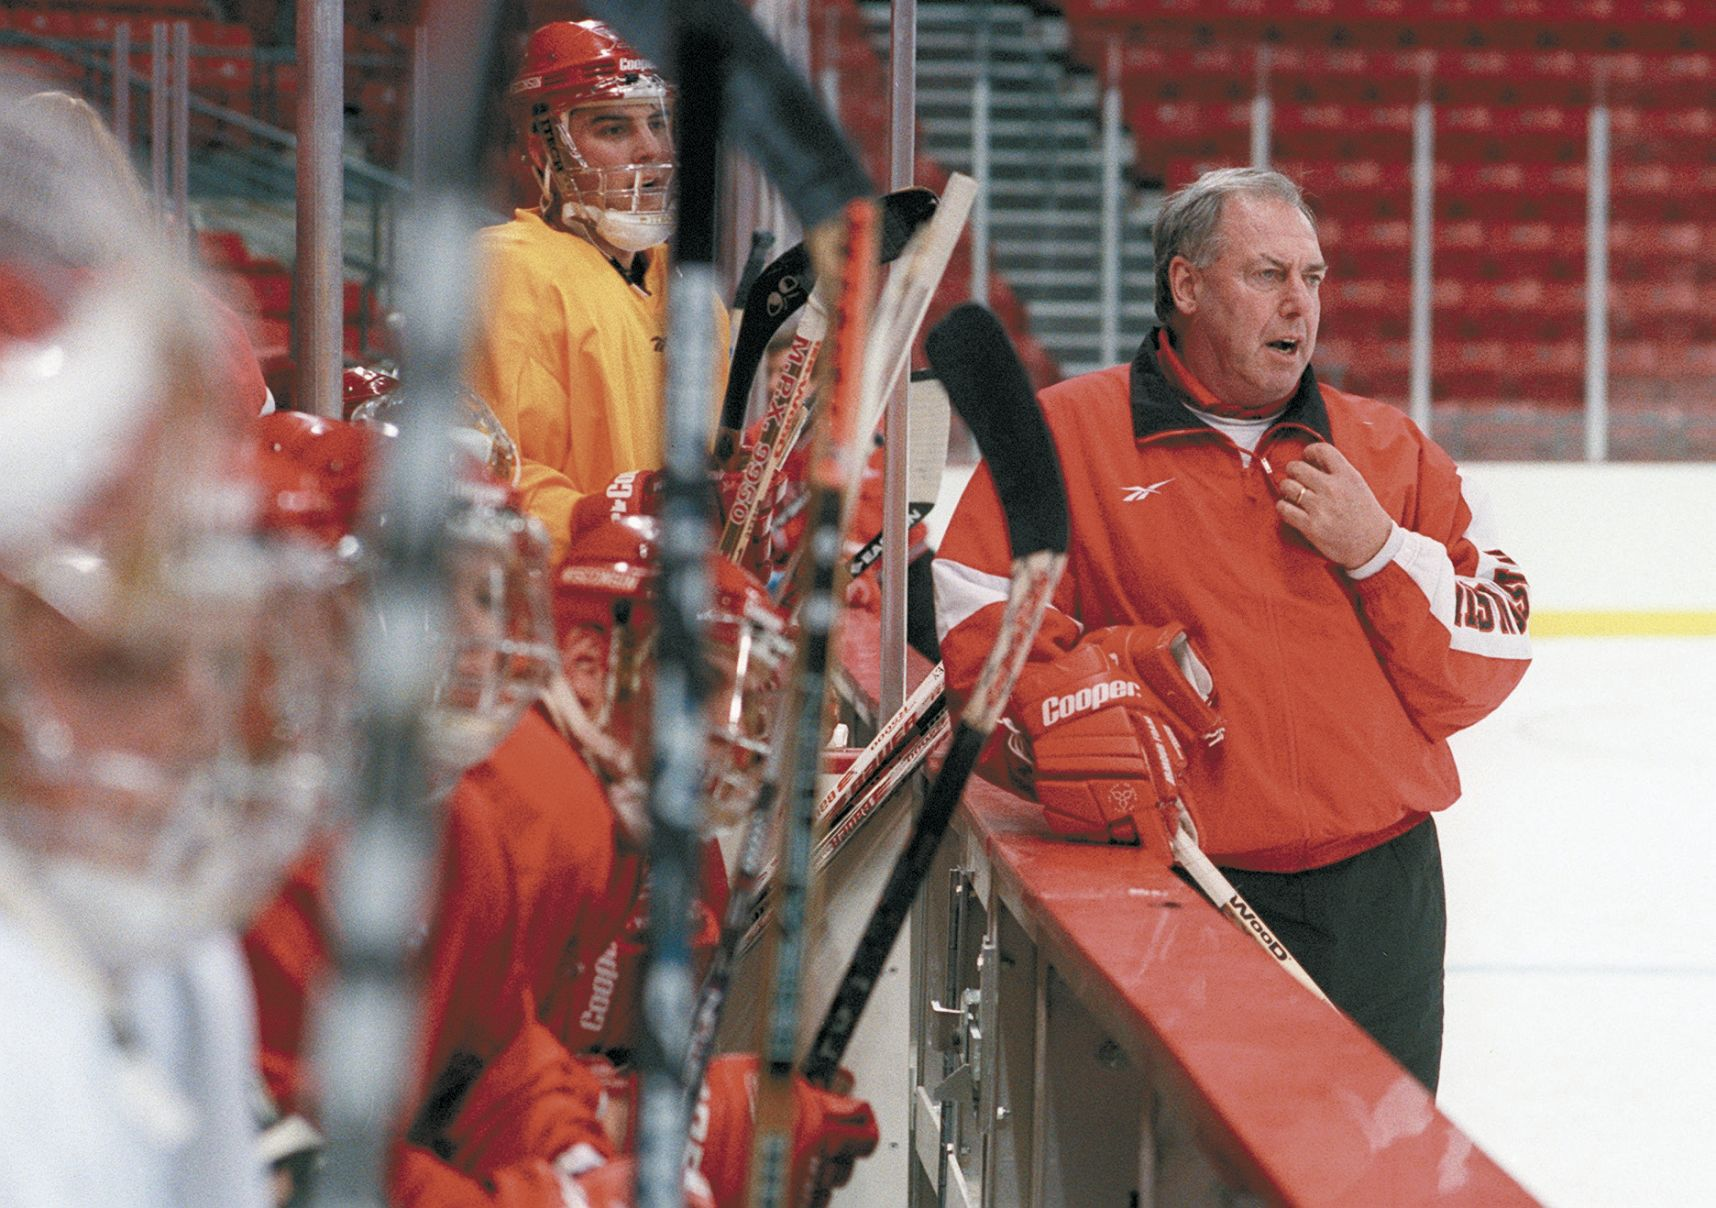 WCHA: Celebration Of Jeff Sauer's Life Planned For March 9, 2017